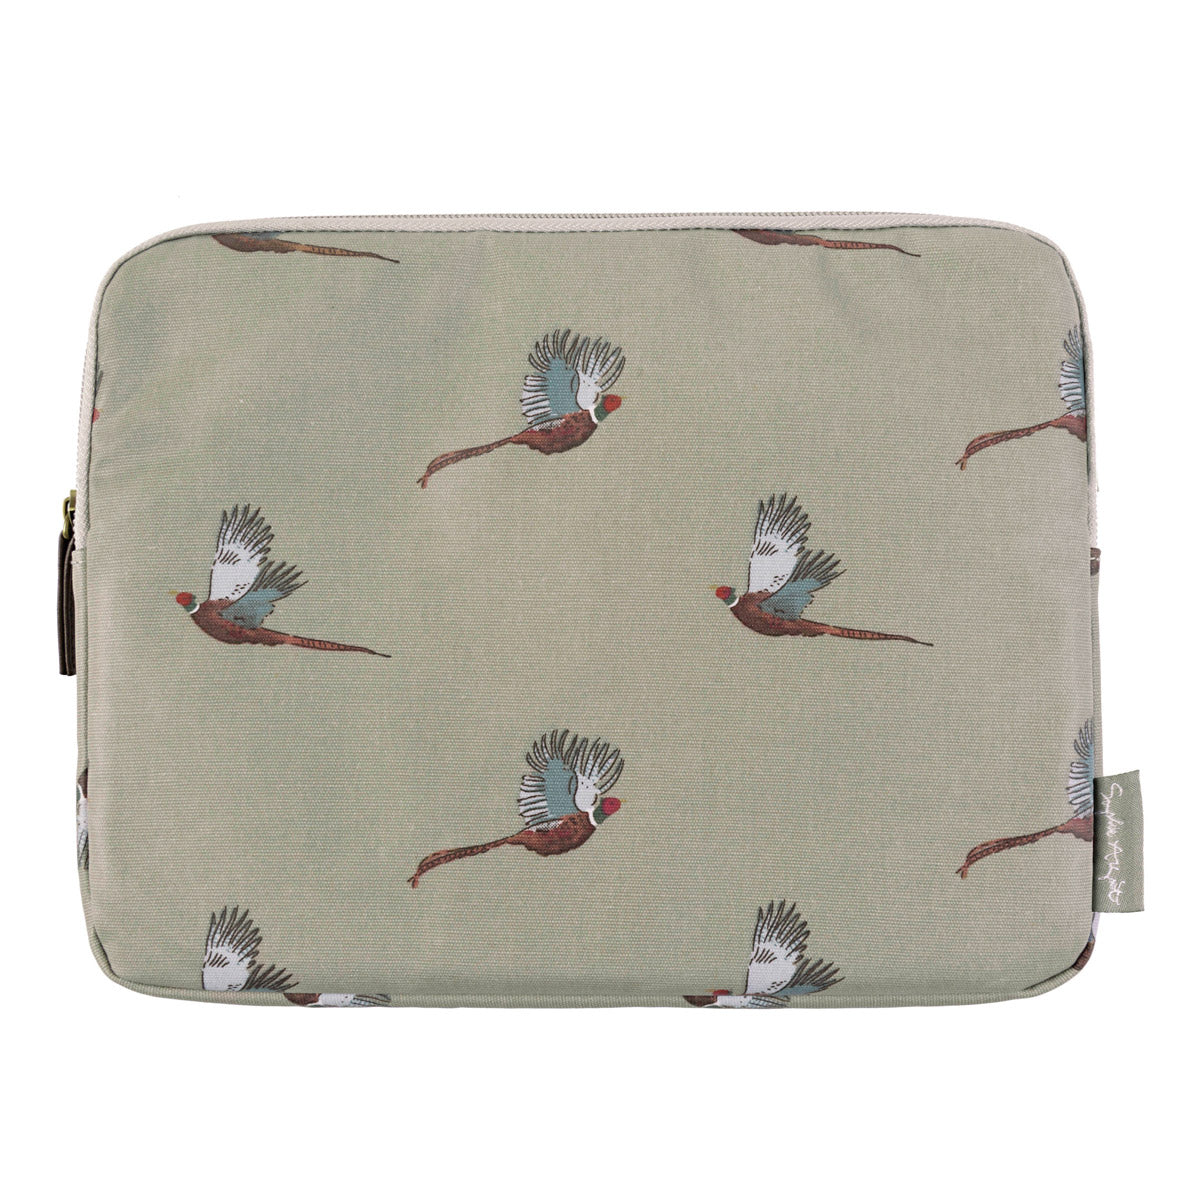 Ipad Case - Pheasant